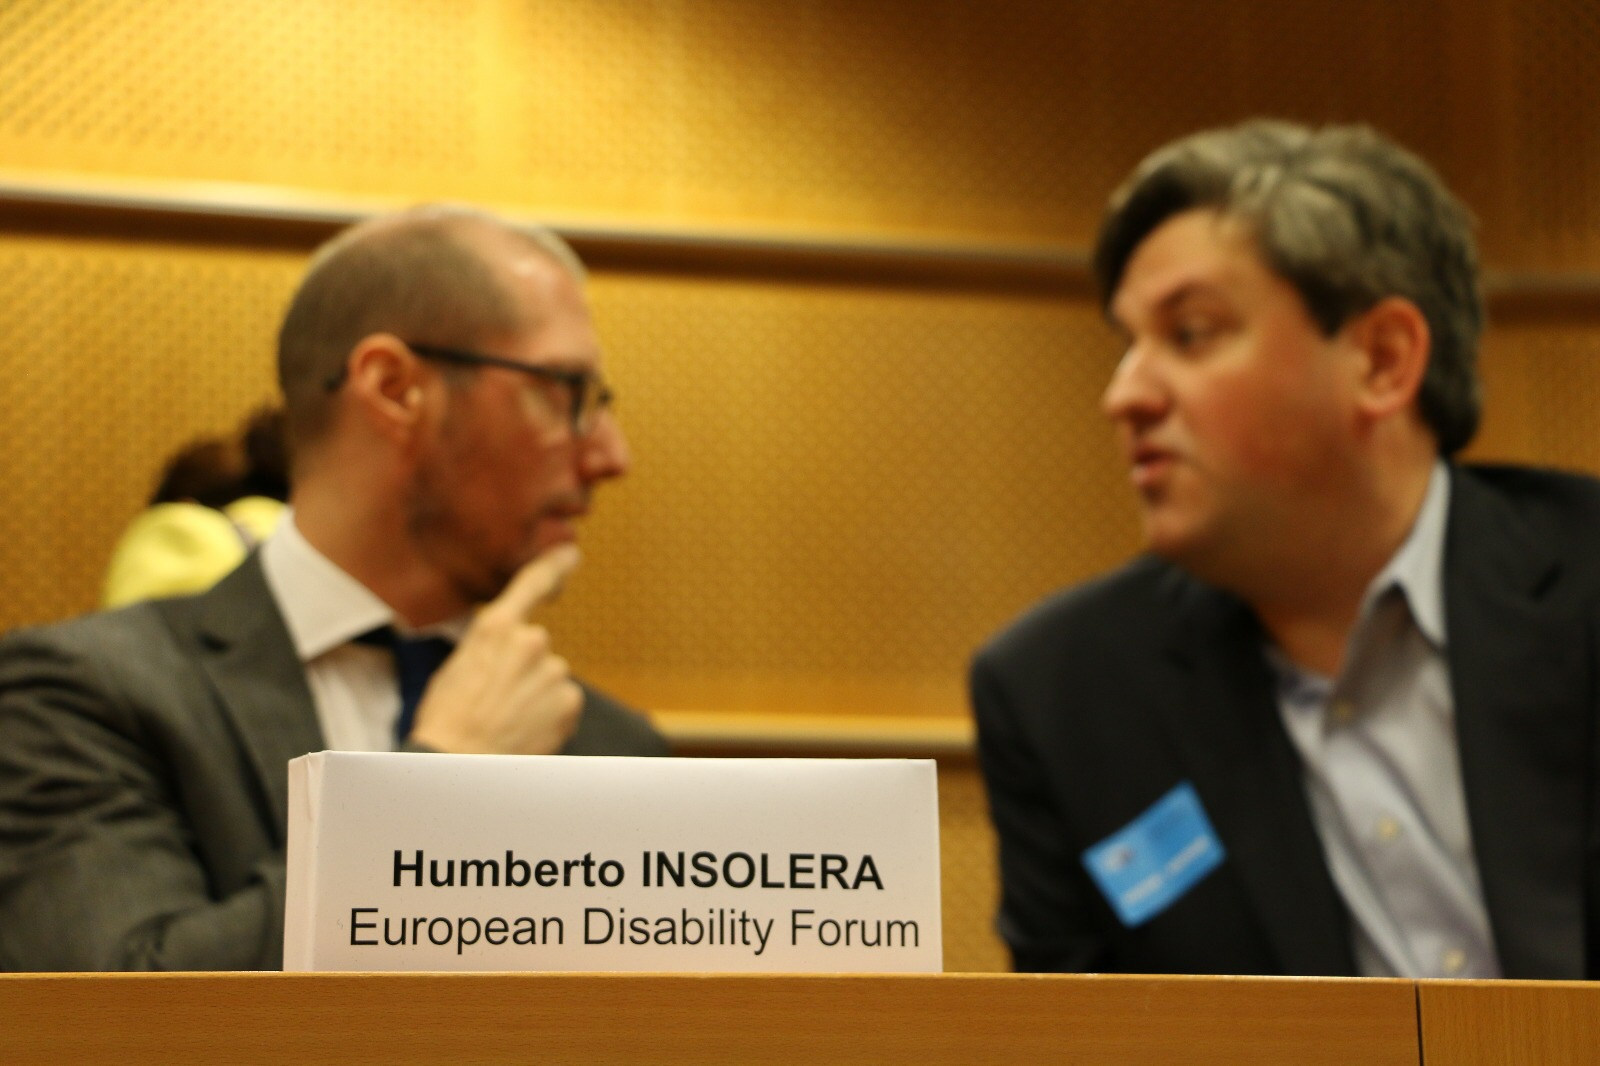 Discussing with Aira Vice President of Communications about his latest innovation for deaf and hard of hearing, blind and visually impaired during Google-EDF event on Artificial Intelligence at the European Parliament - Brussels, Belgium - November 2017